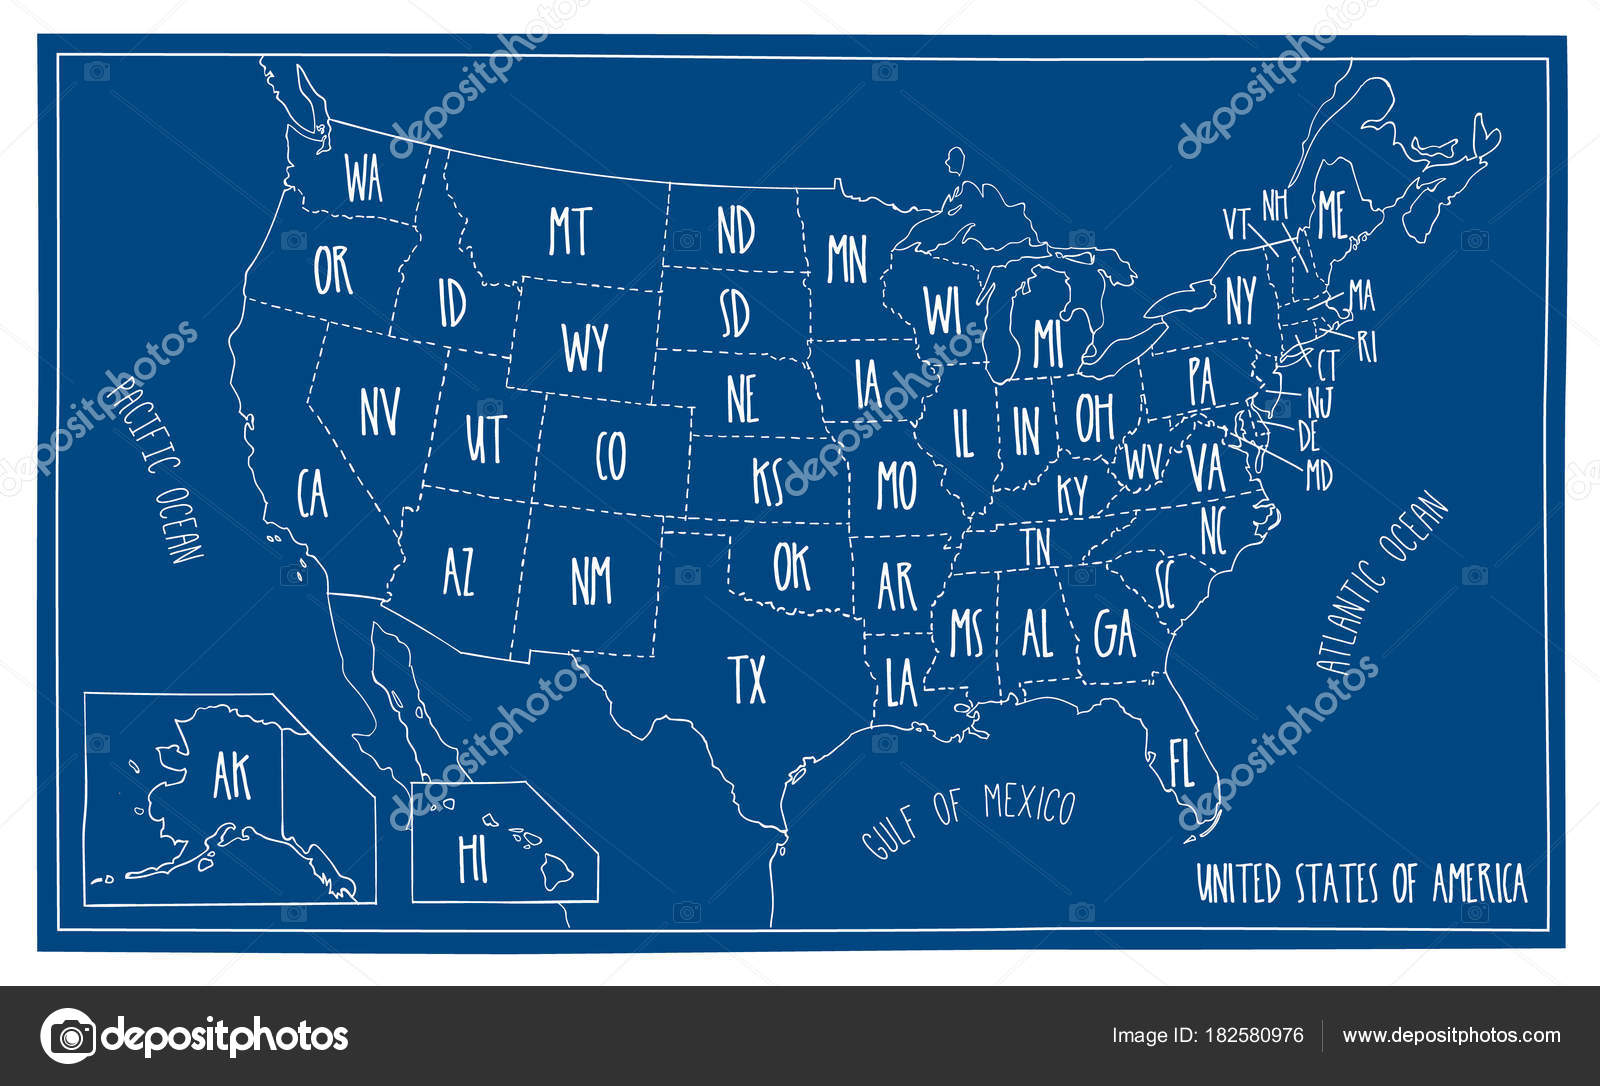 Us map blueprint fidor hand drawn vector map of the usa blueprint style cartography of united states of america including malvernweather Images